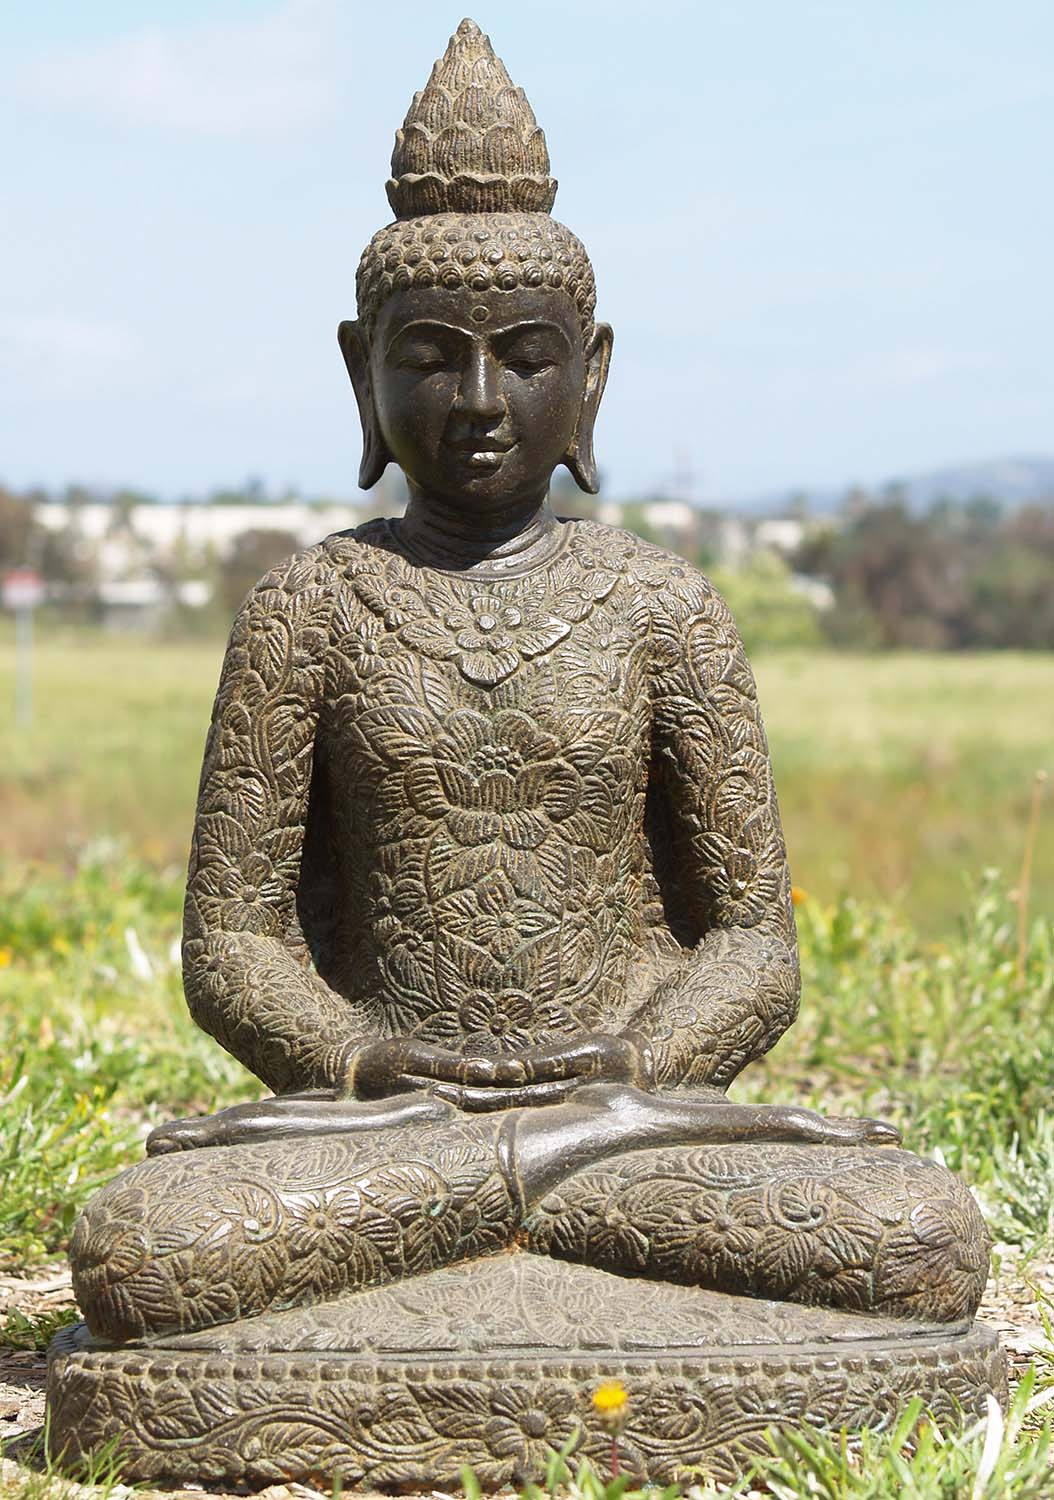 sold stone meditating garden buddha statue 26 86ls171. Black Bedroom Furniture Sets. Home Design Ideas